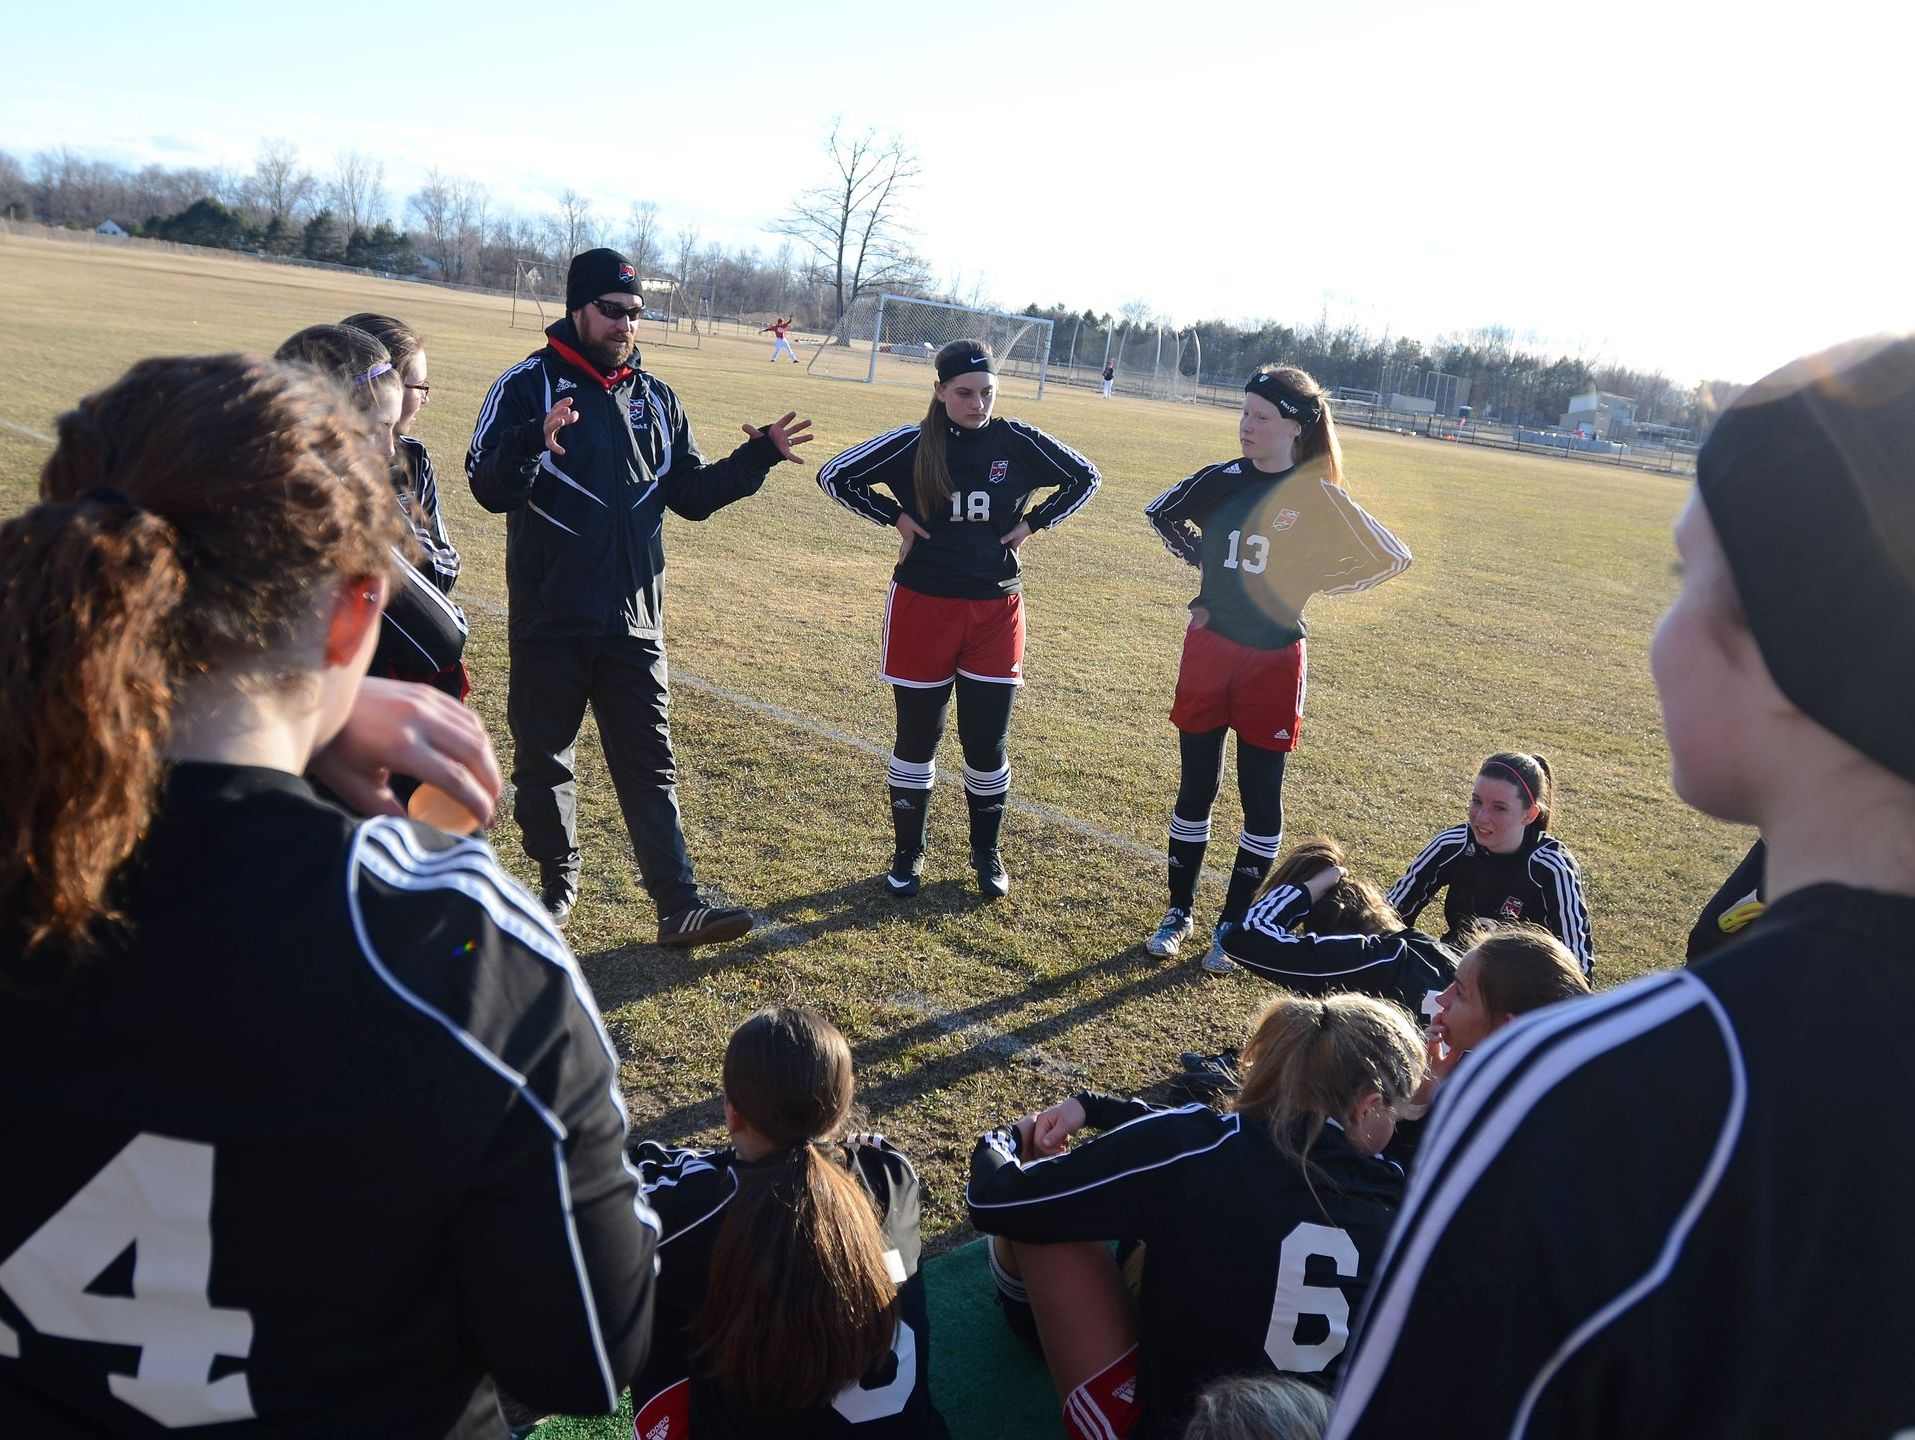 Big Reds' coach, Ryan Kopydlowski, talks to his team during halftime Mon, March 30, 2015 during girls soccer action at Port Huron Northern.